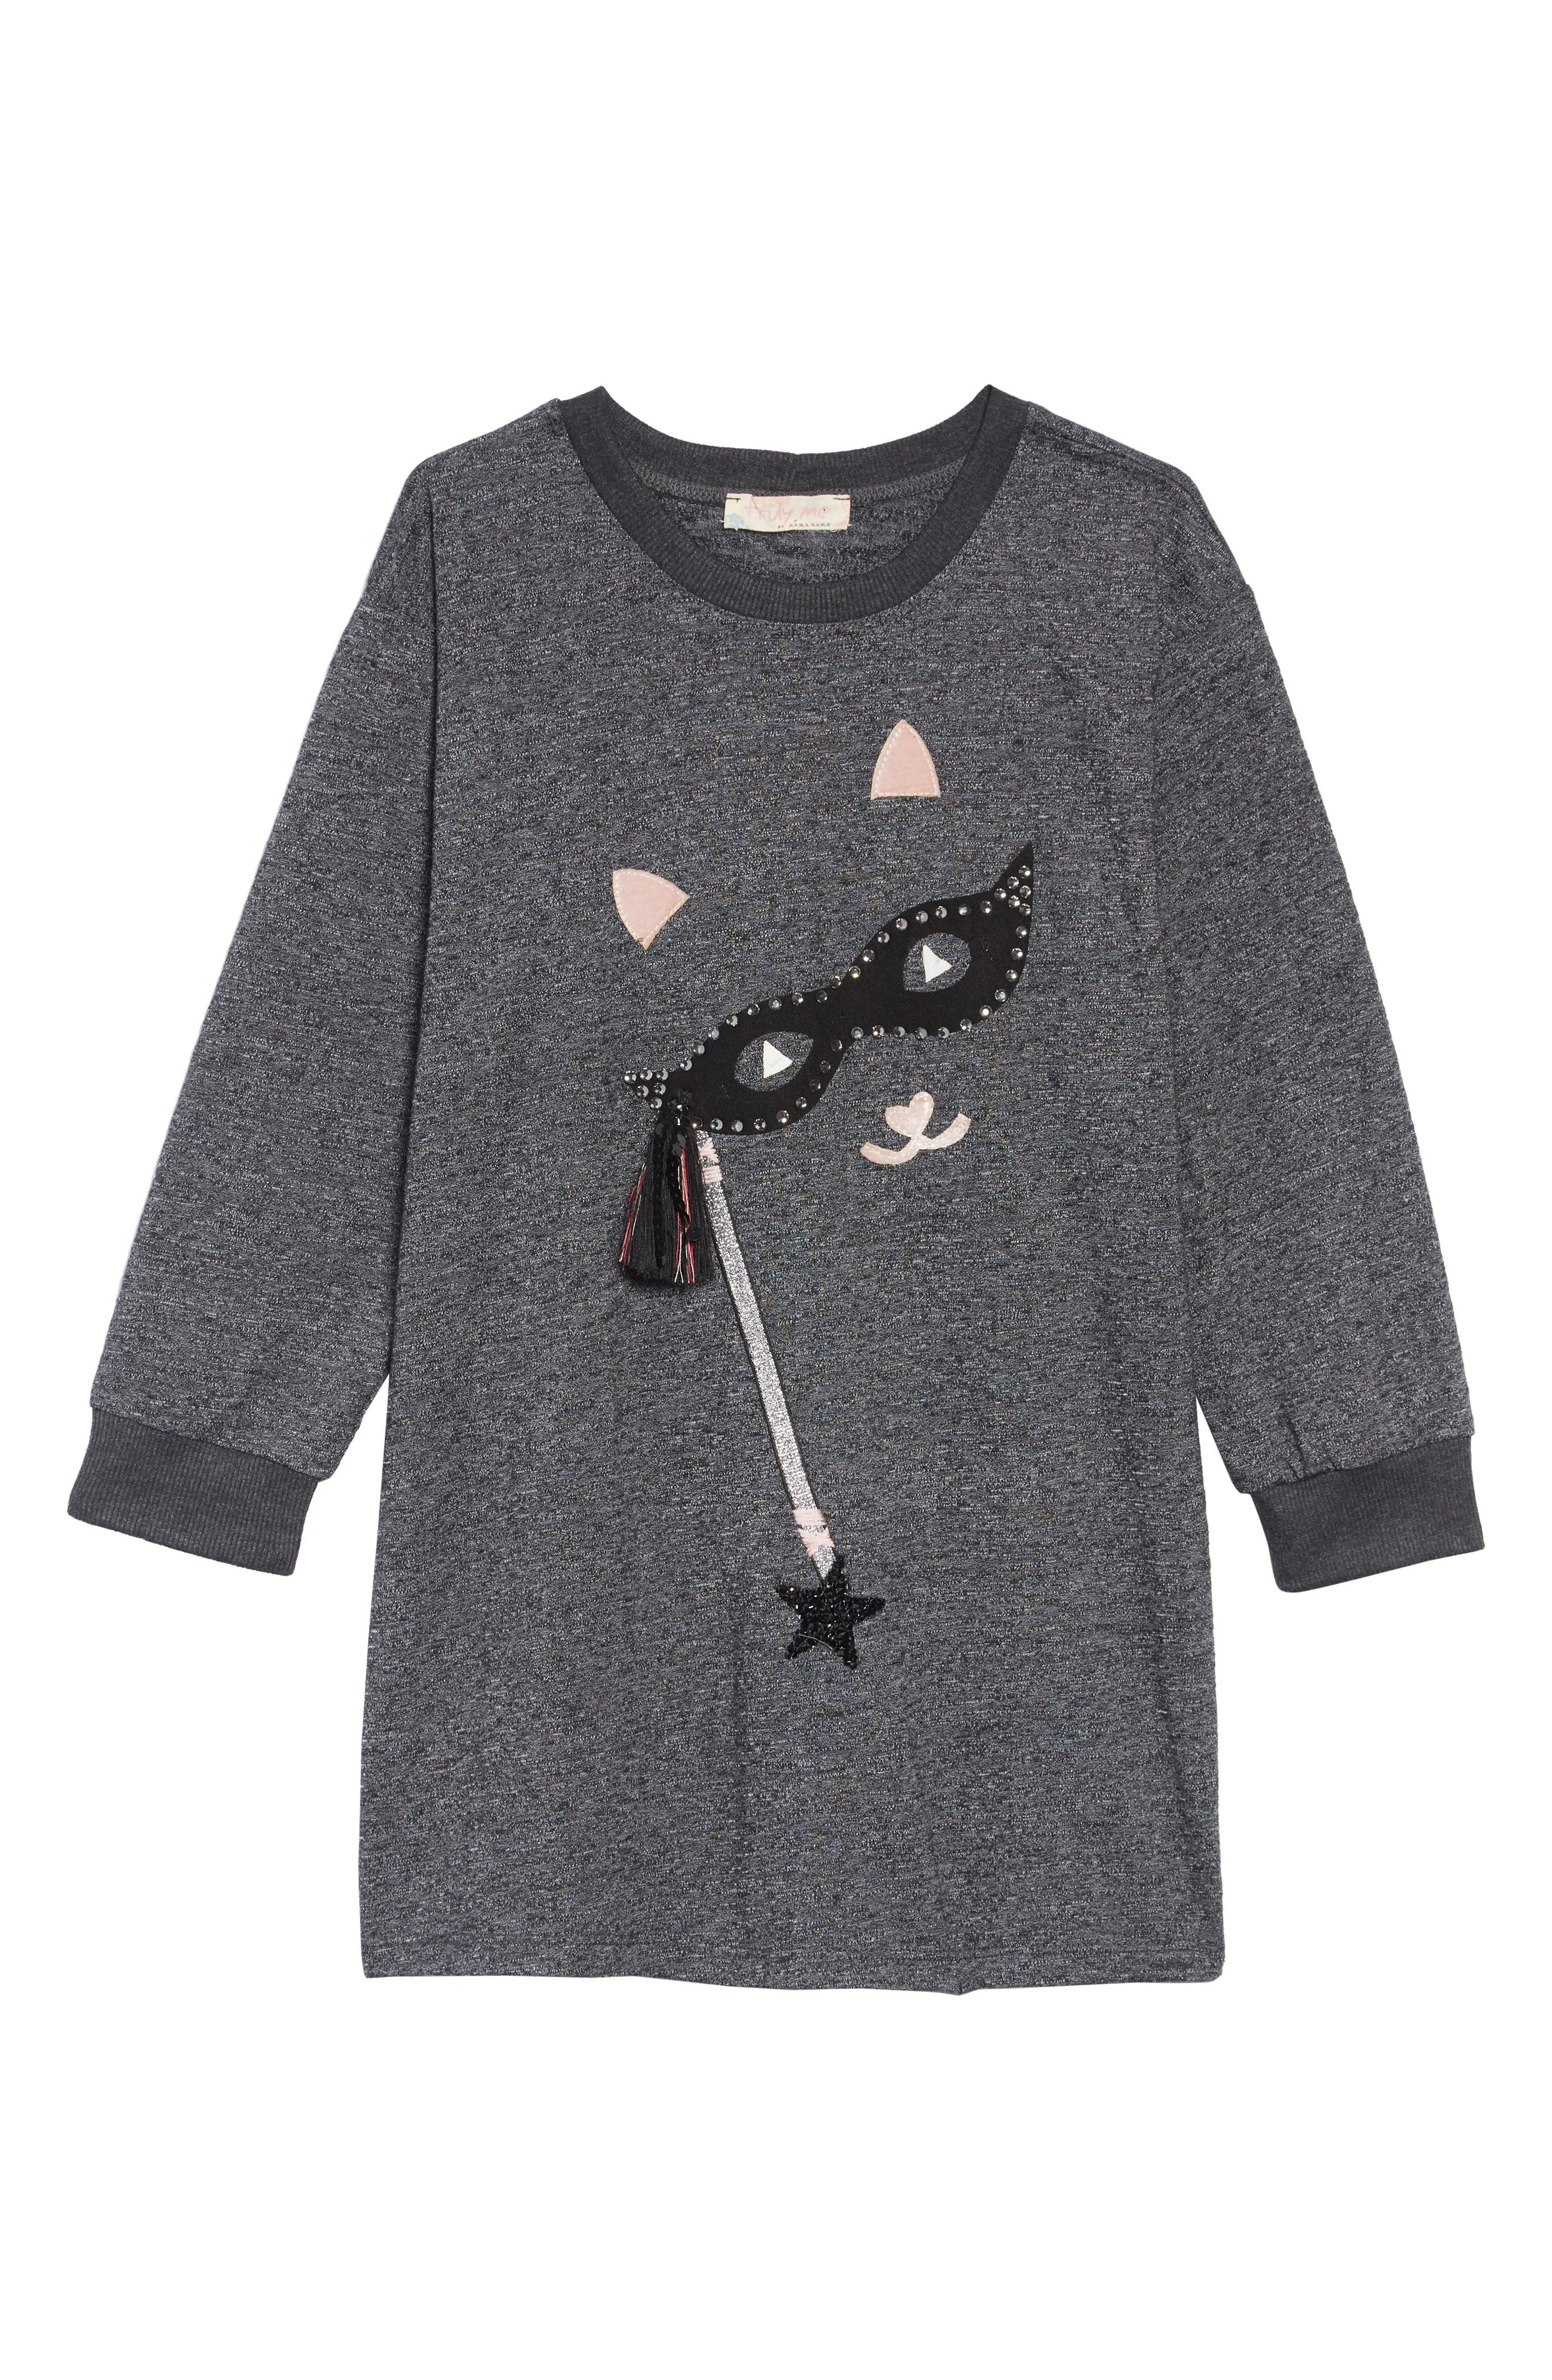 Cat with the Mask T-Shirt Dress,                             Main thumbnail 1, color,                             020